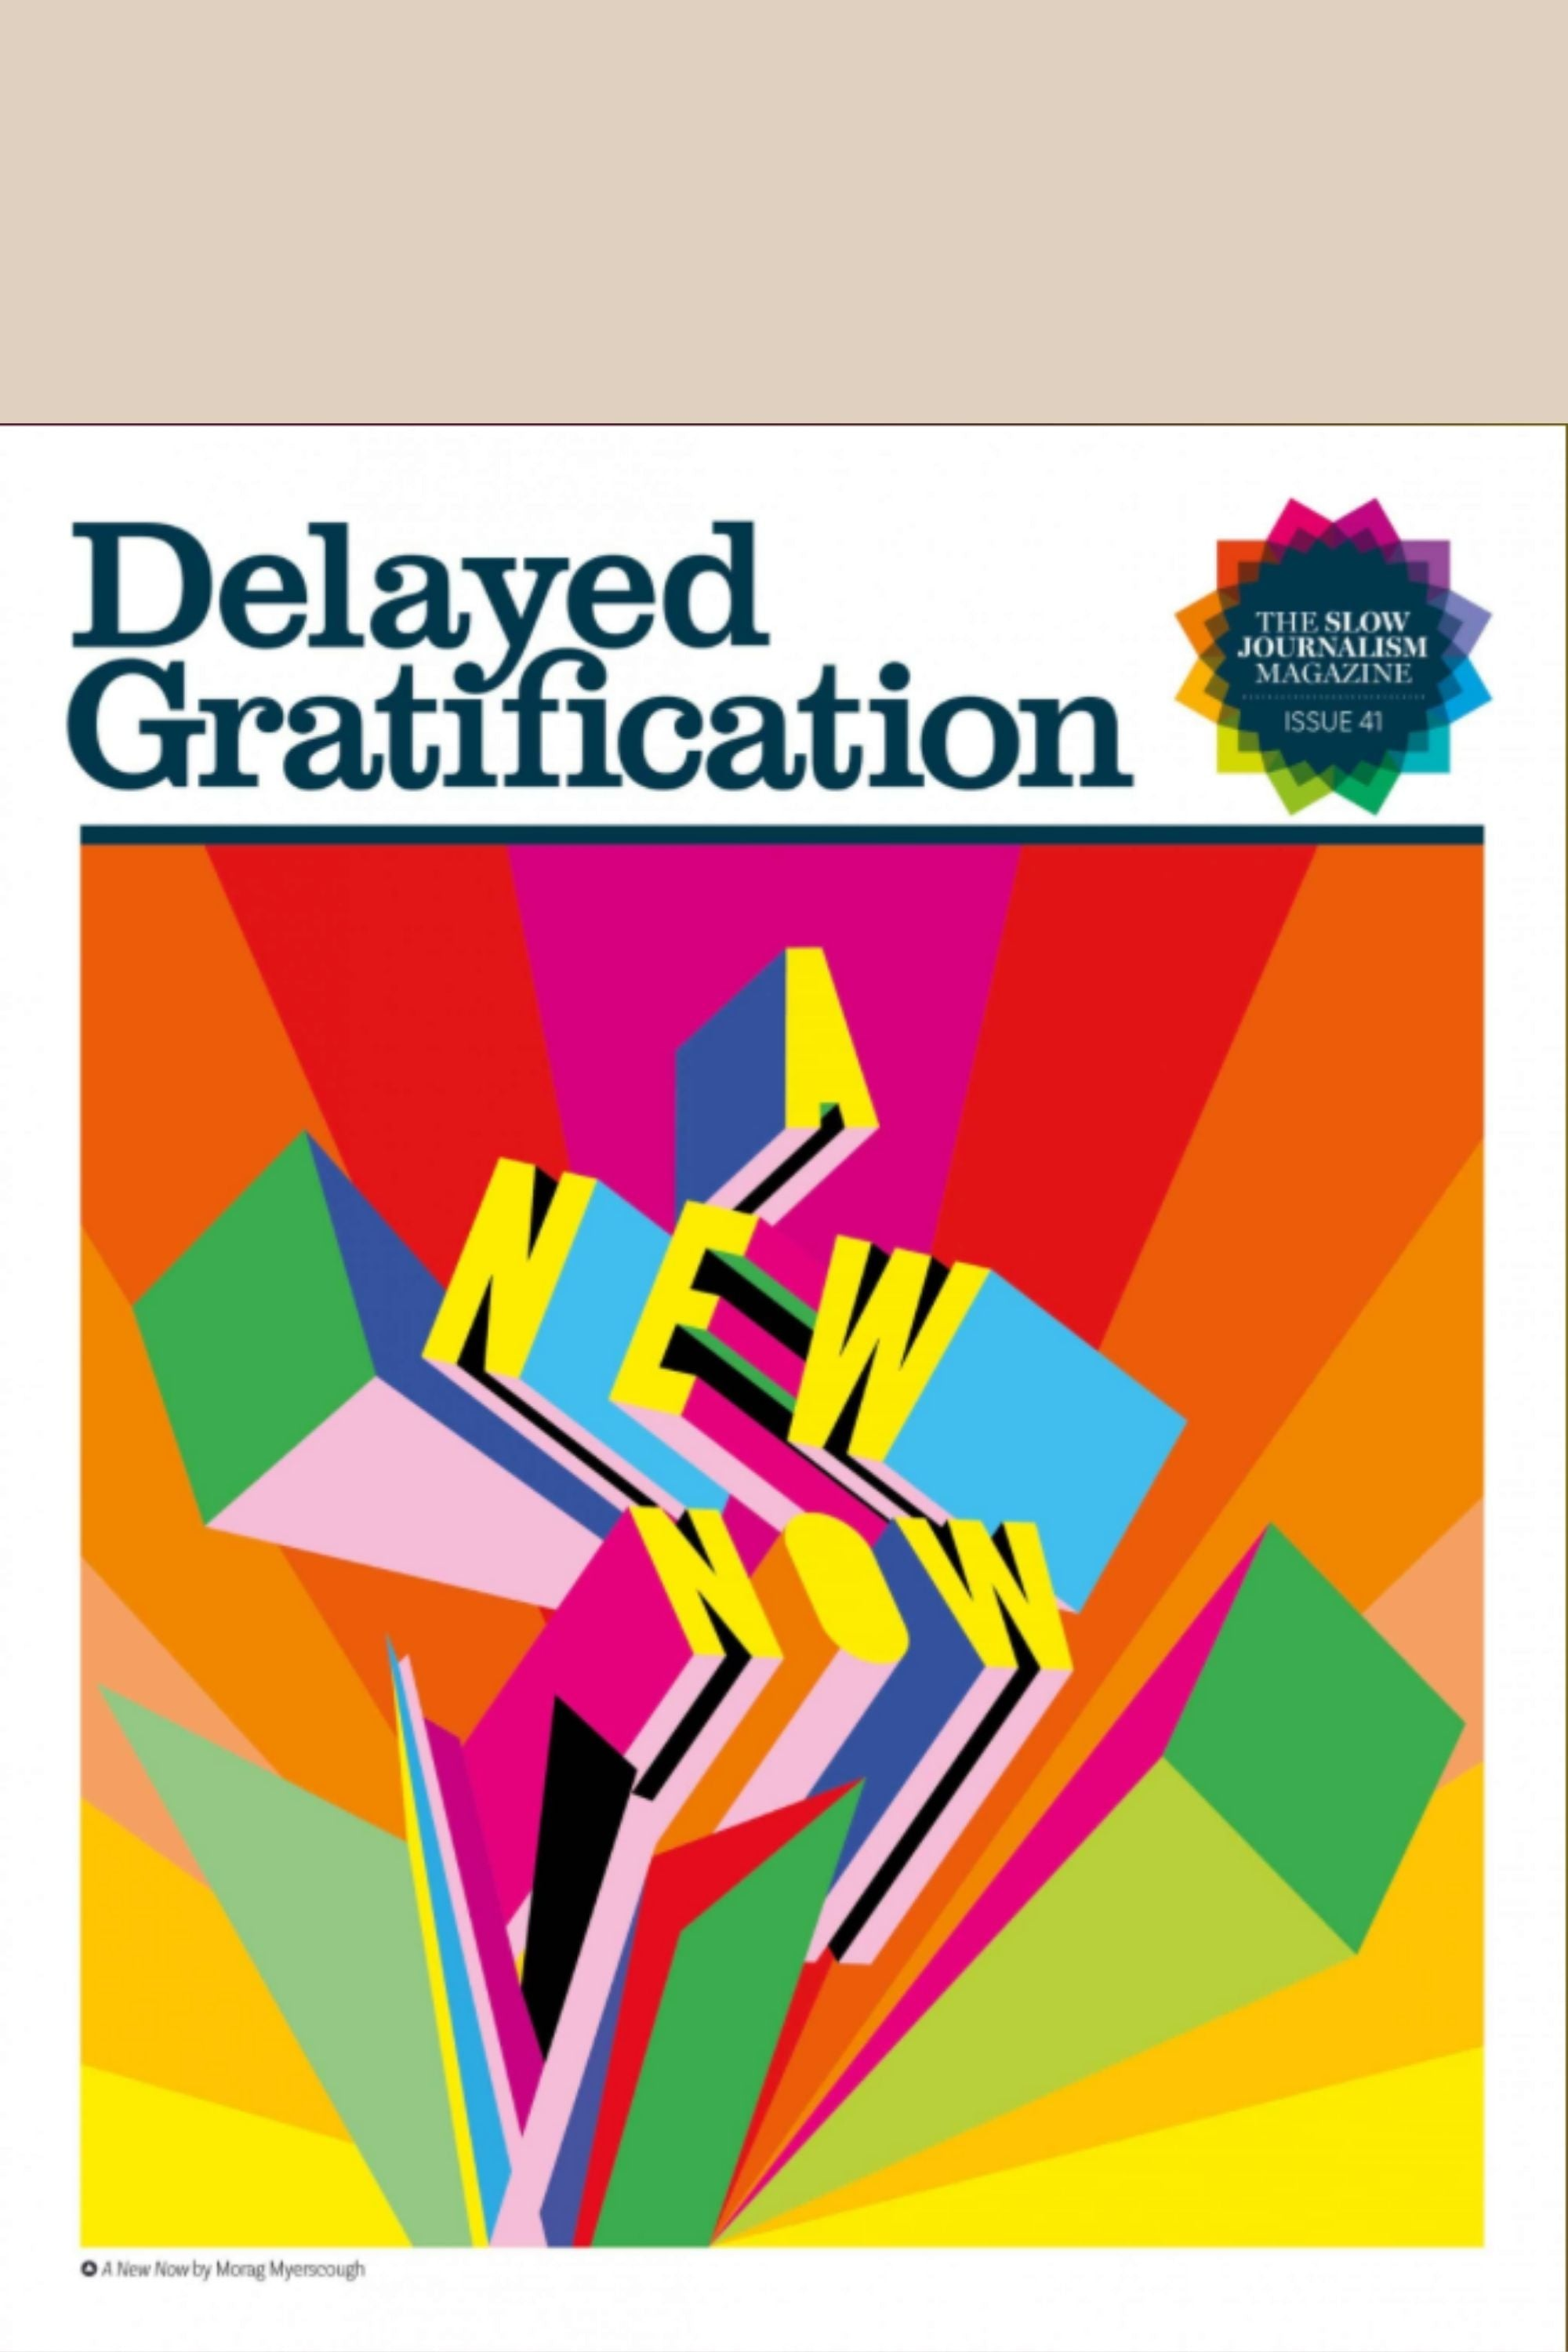 Delayed Gratification Issue 41 Front cover 'A new now'